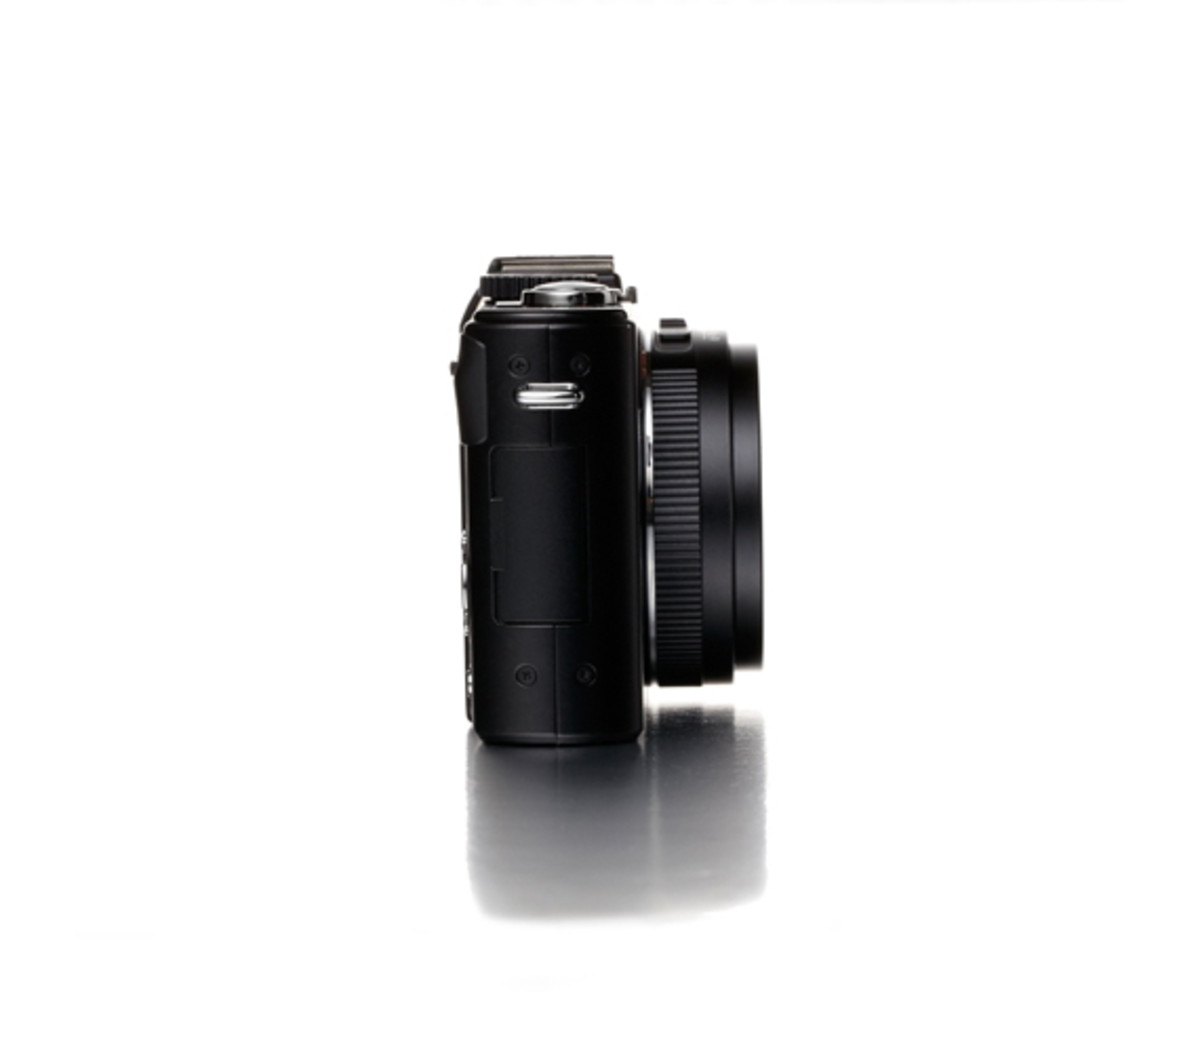 leica-x-ue-d-lux-5-detailed-look-7